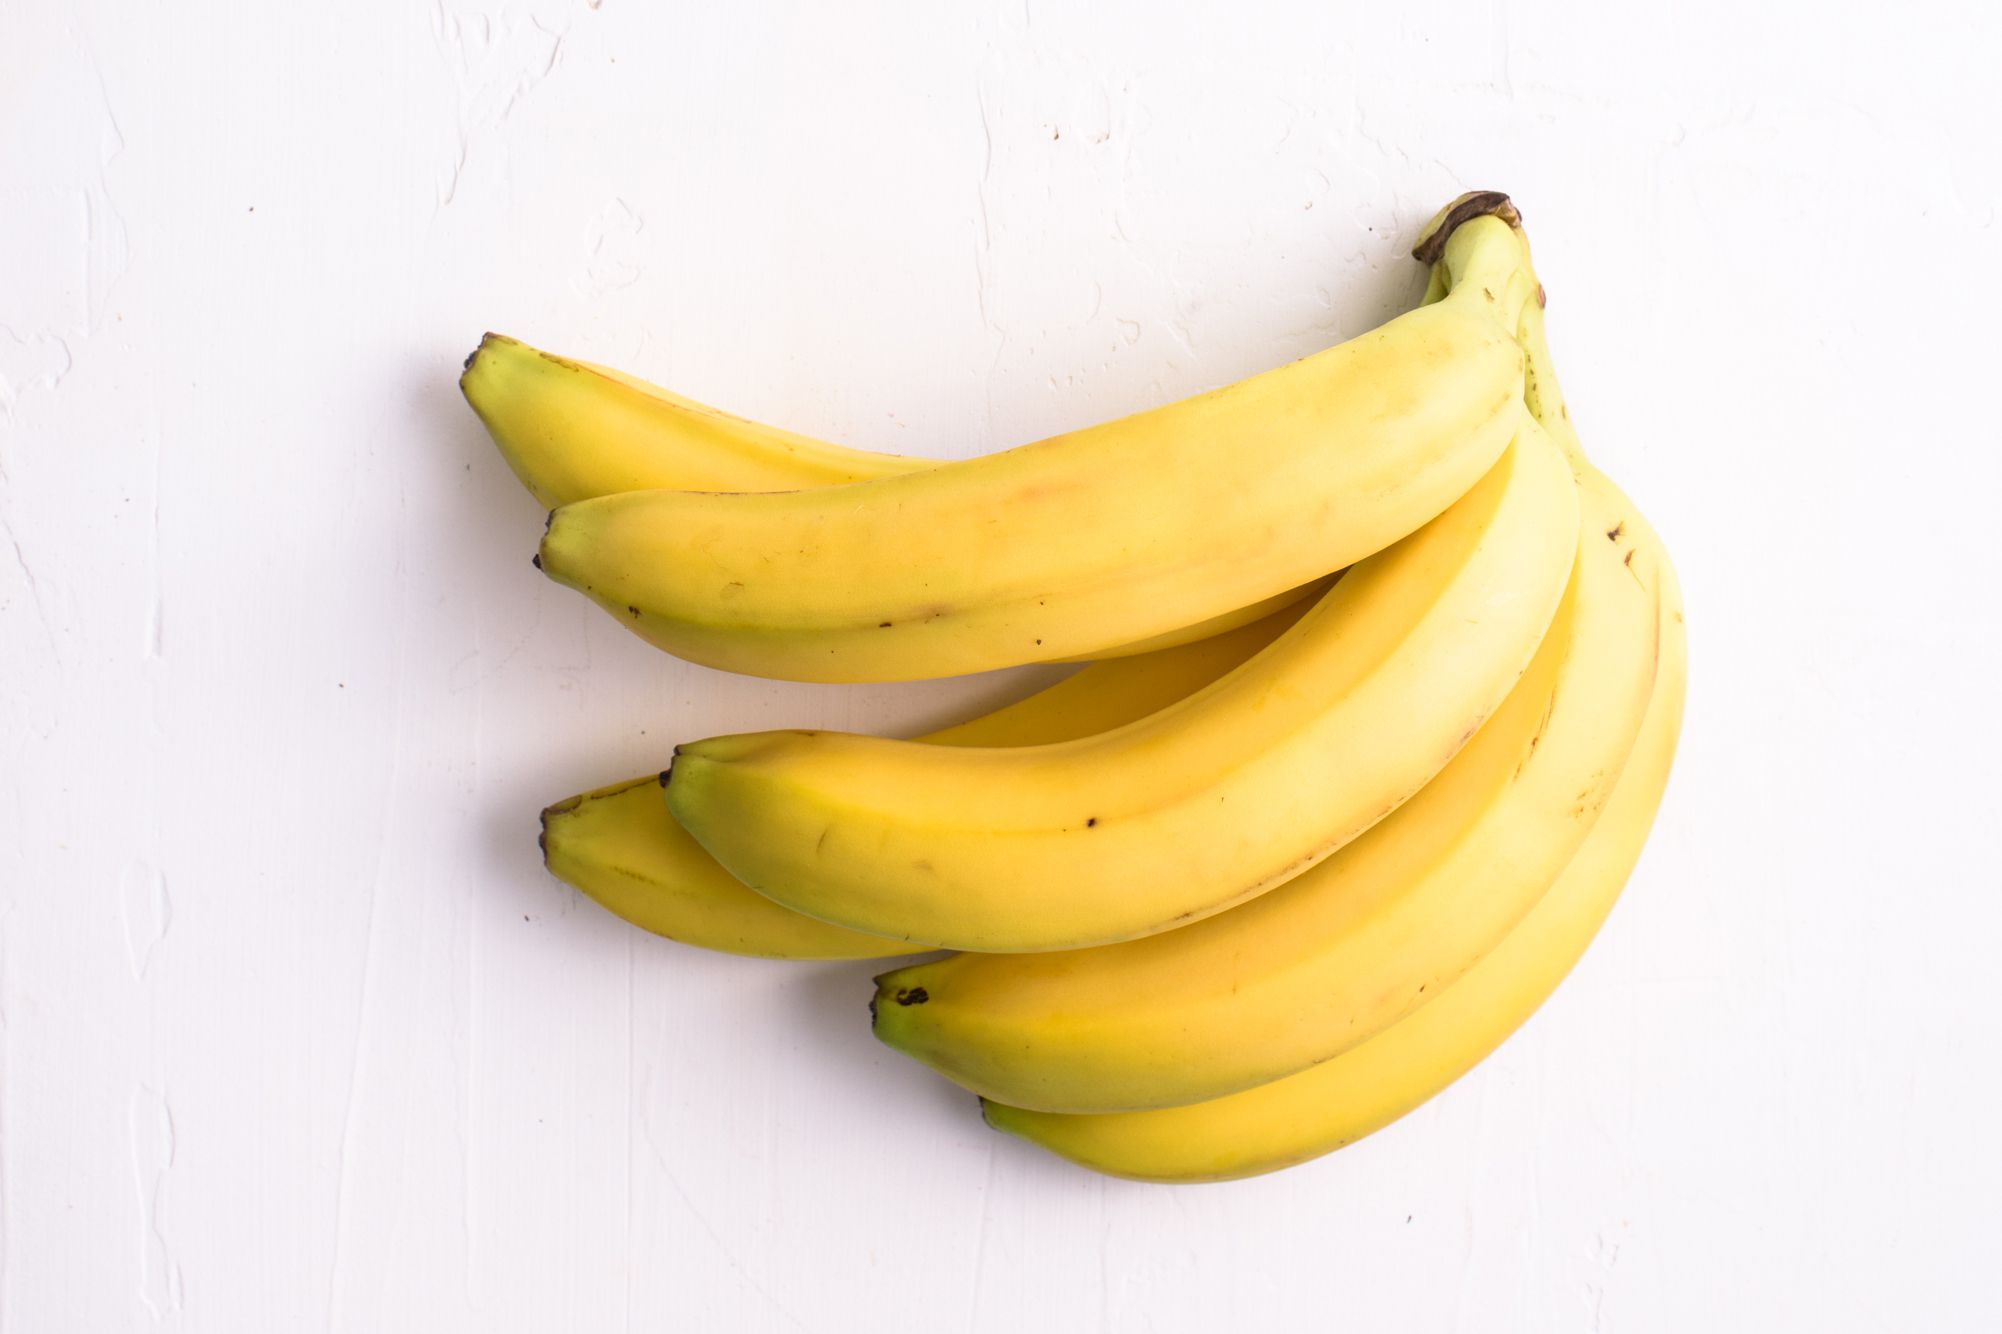 Five Photographs Of Banana In Seach Of >> Serving Sizes For 18 Fruits And Vegetables